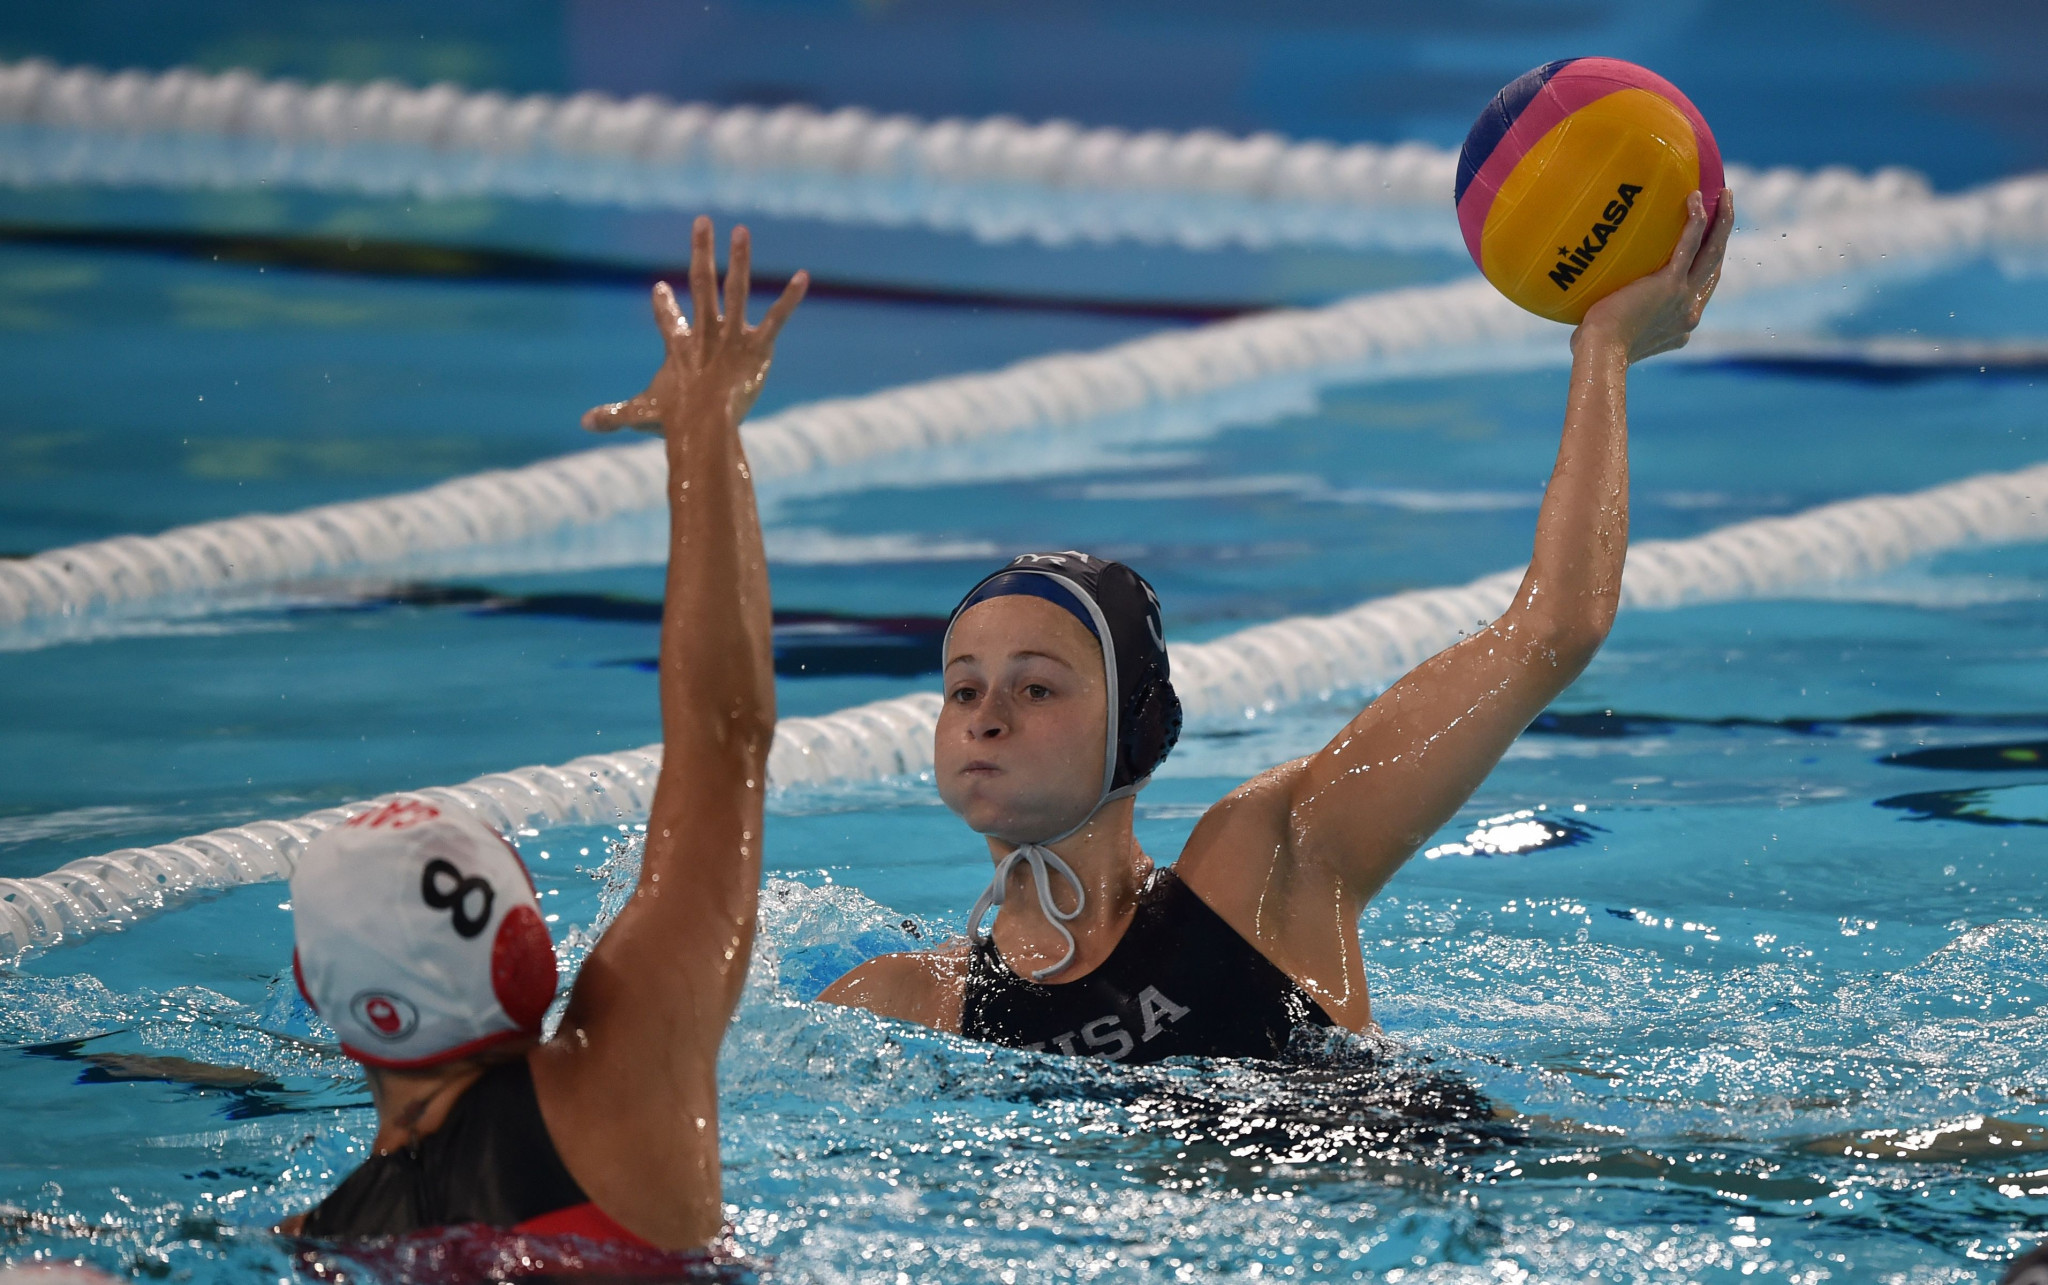 The United States defeated Canada to win gold in the women's water polo competition ©Getty Images